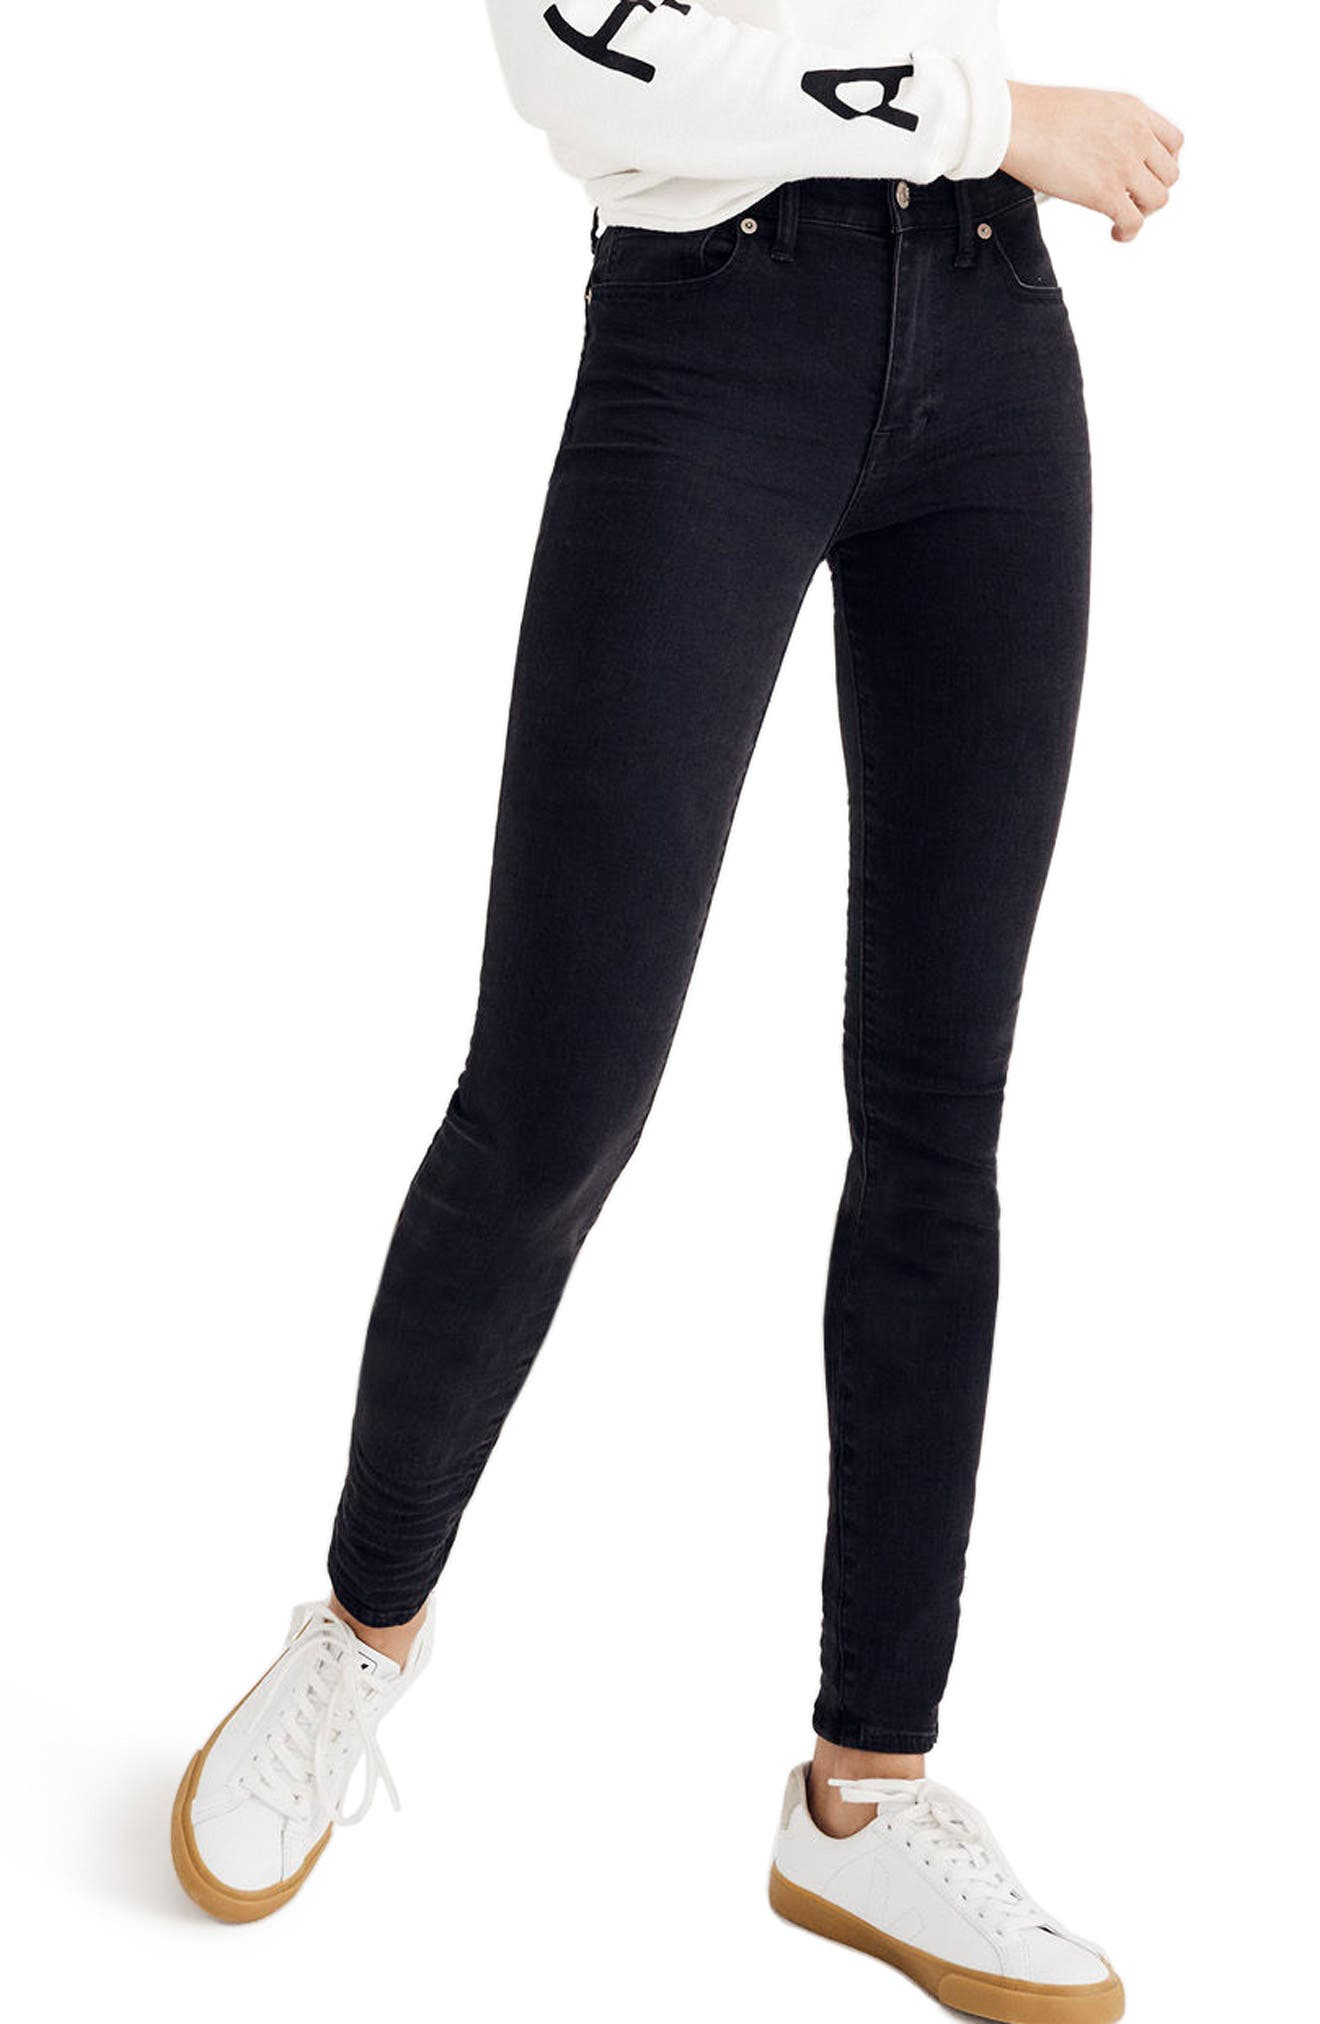 9-Inch High-Rise Skinny Jeans,                         Main,                         color, Lunar 2